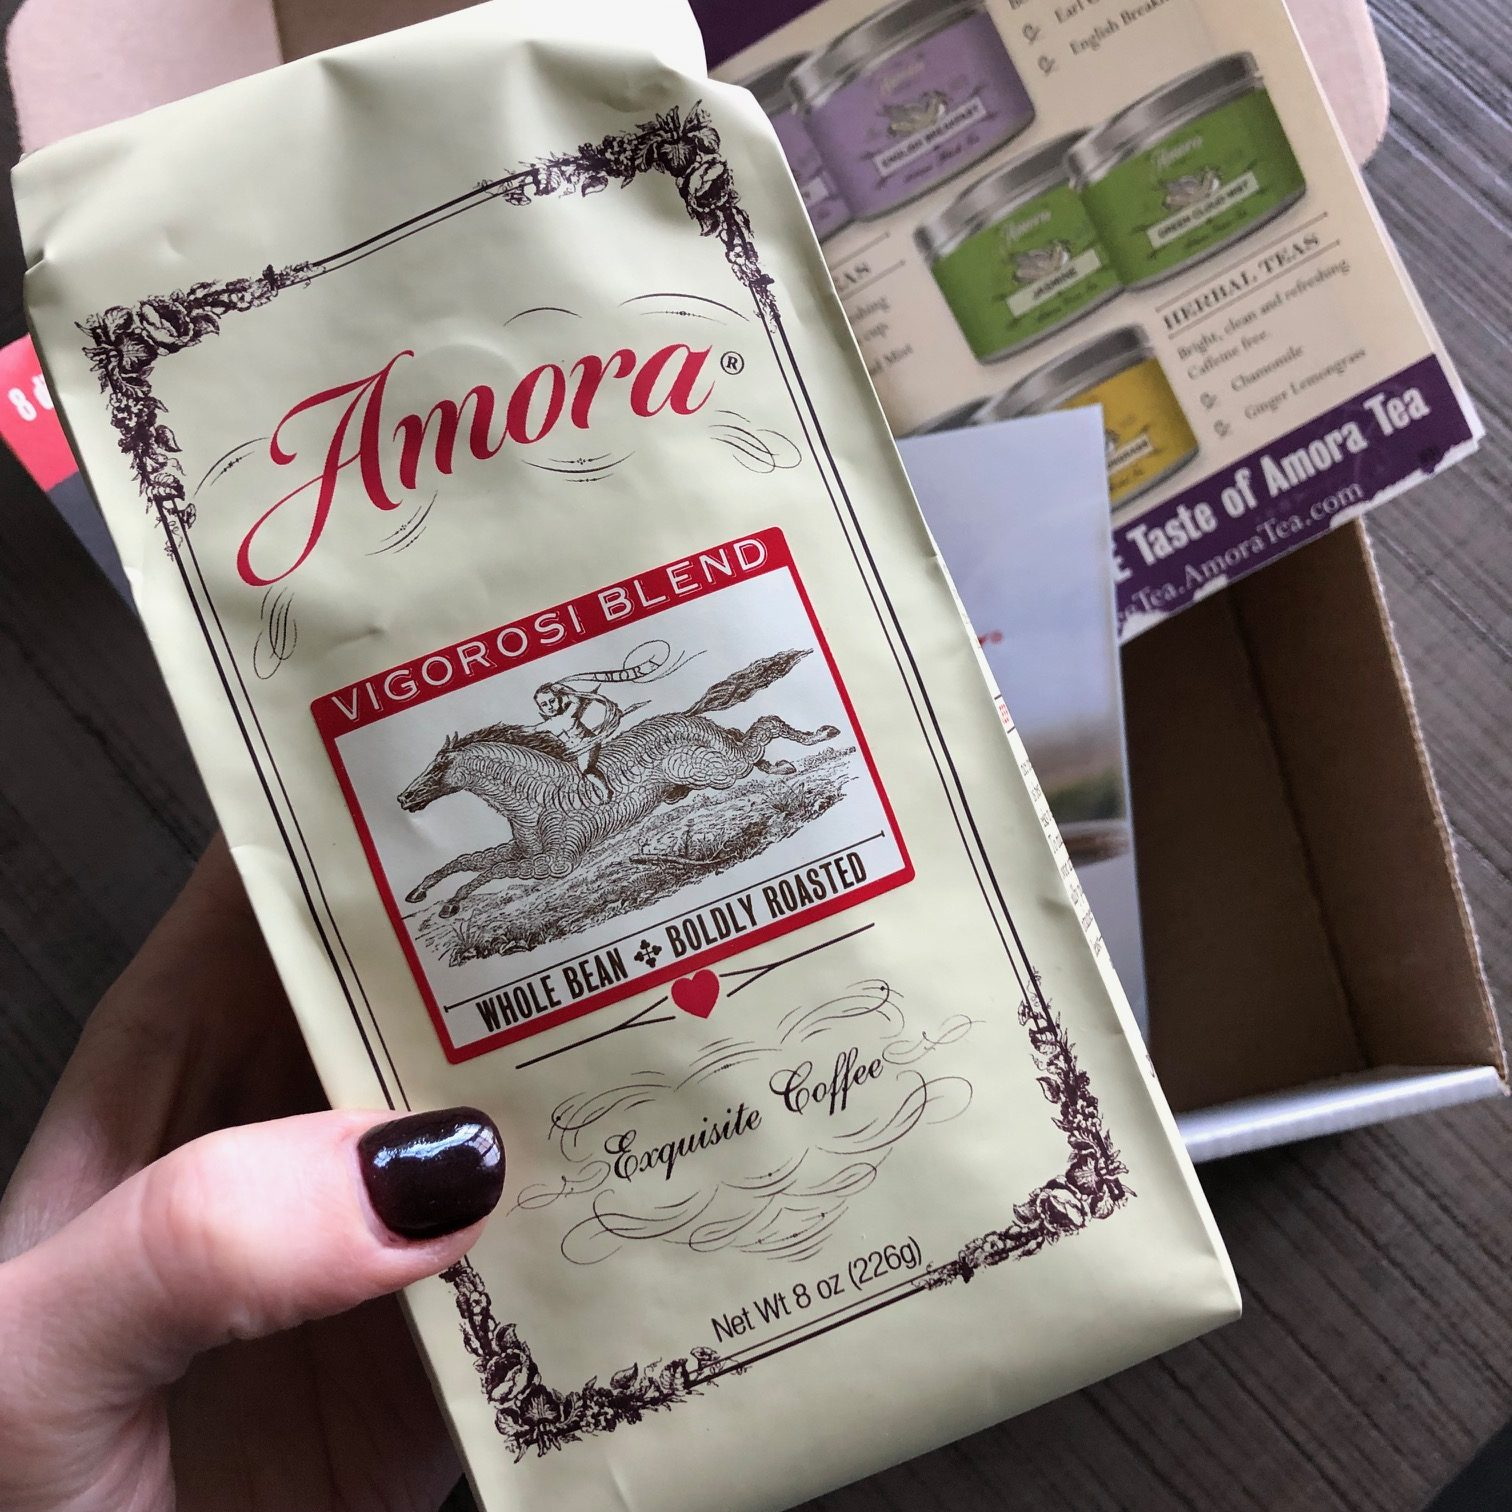 amora coffee vigorosi blend